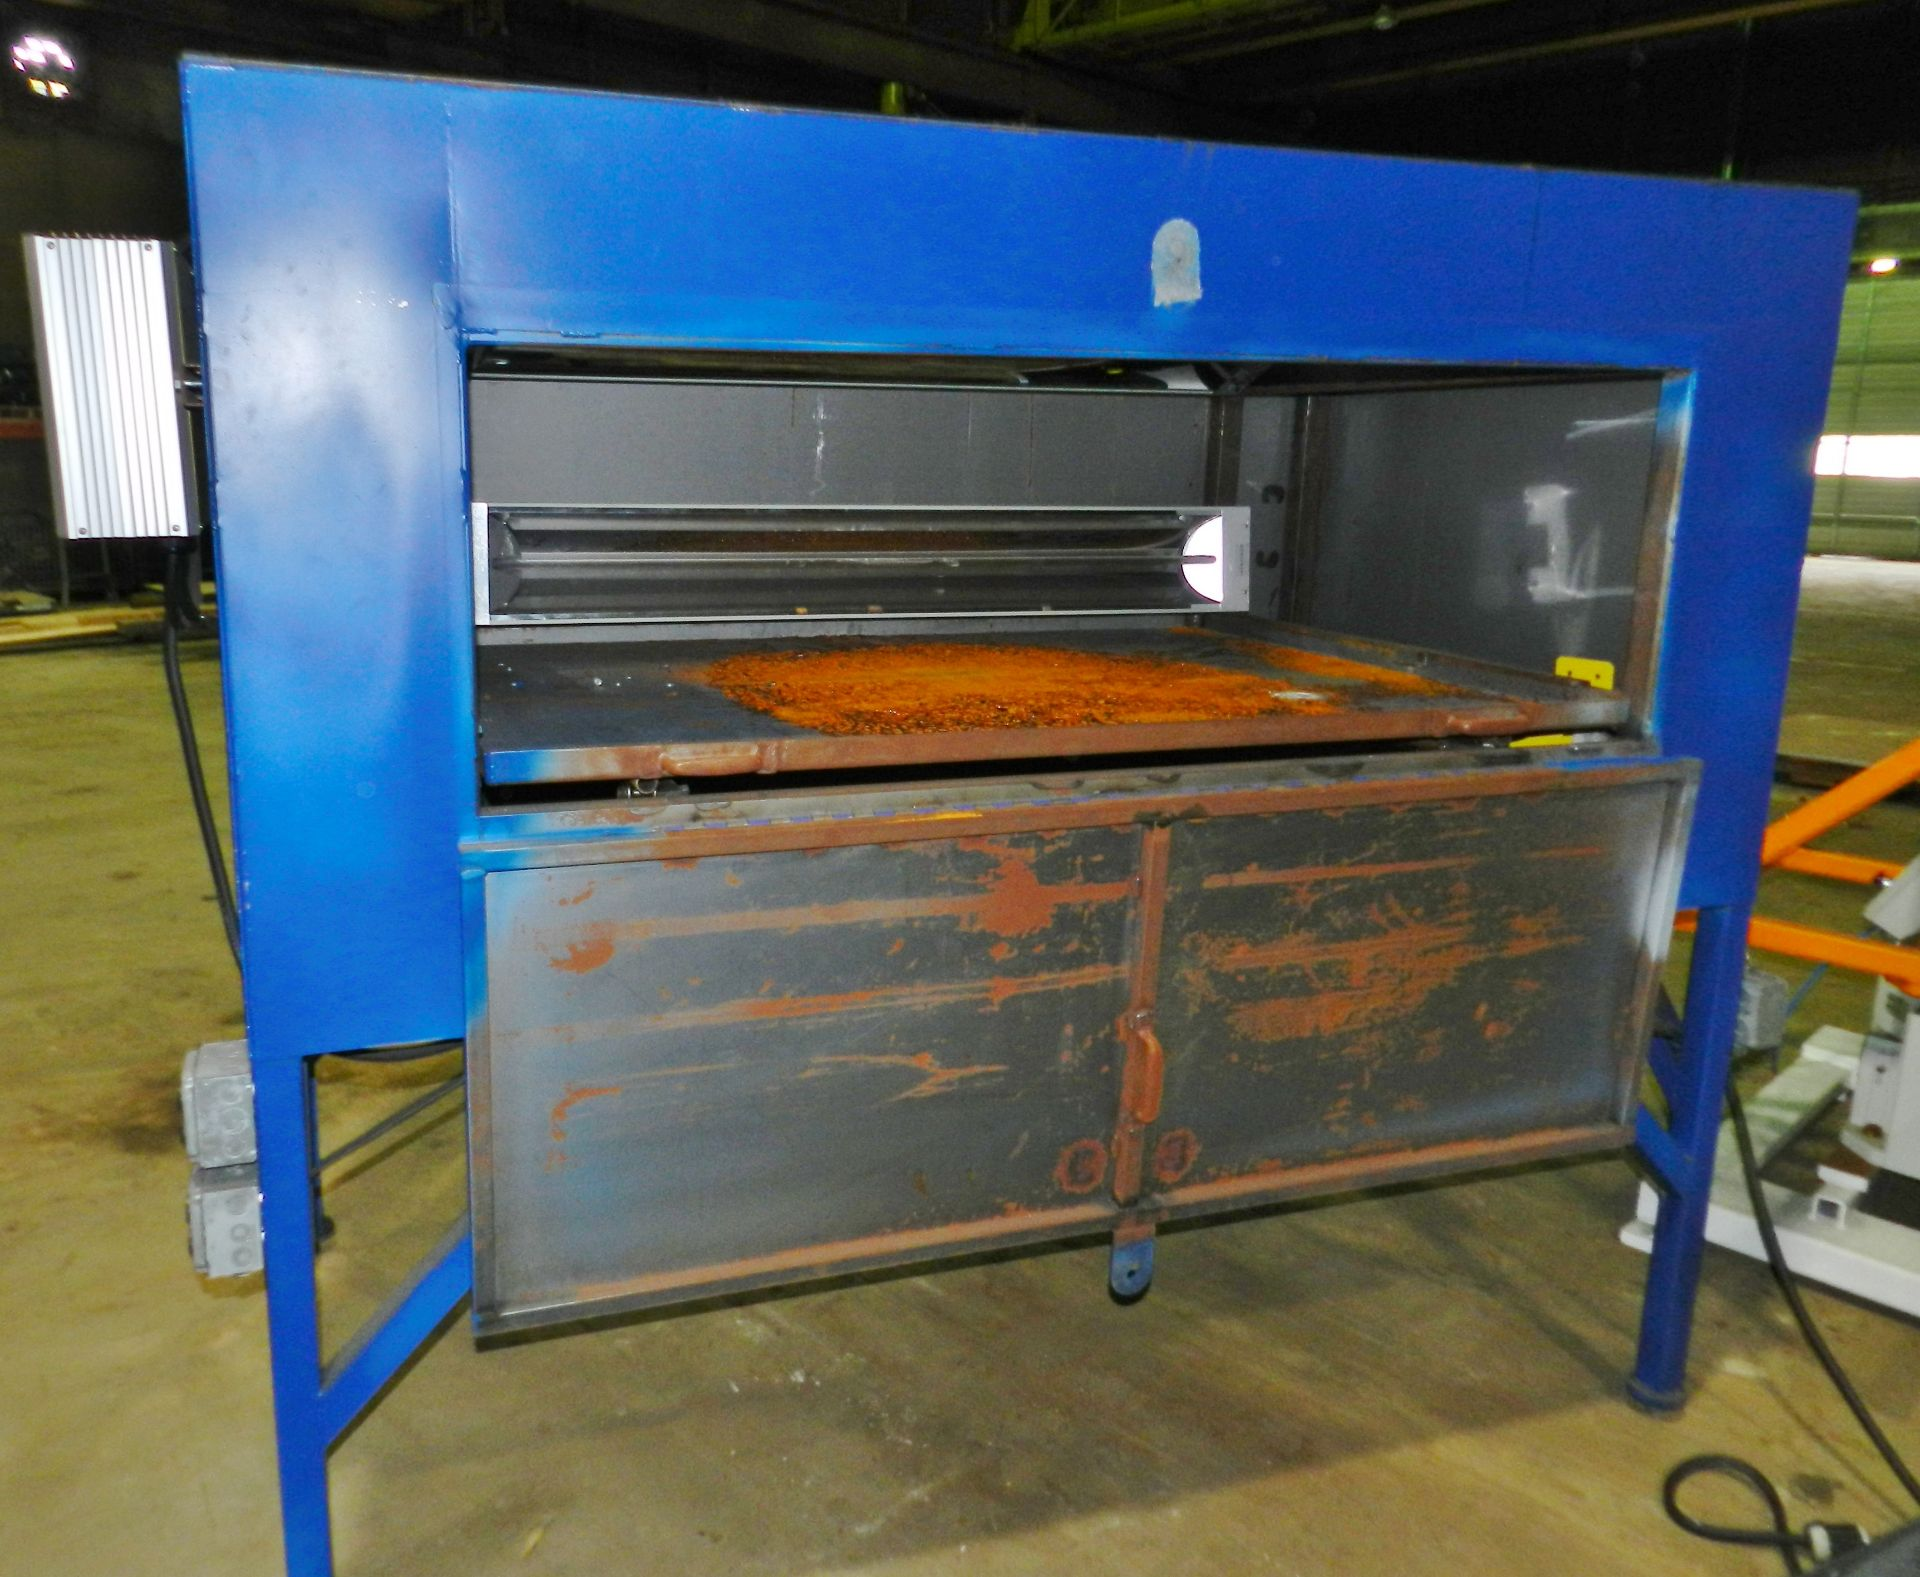 Lot 33 - Infratech 9,000 Watt Infared Curing Oven S-9000-P